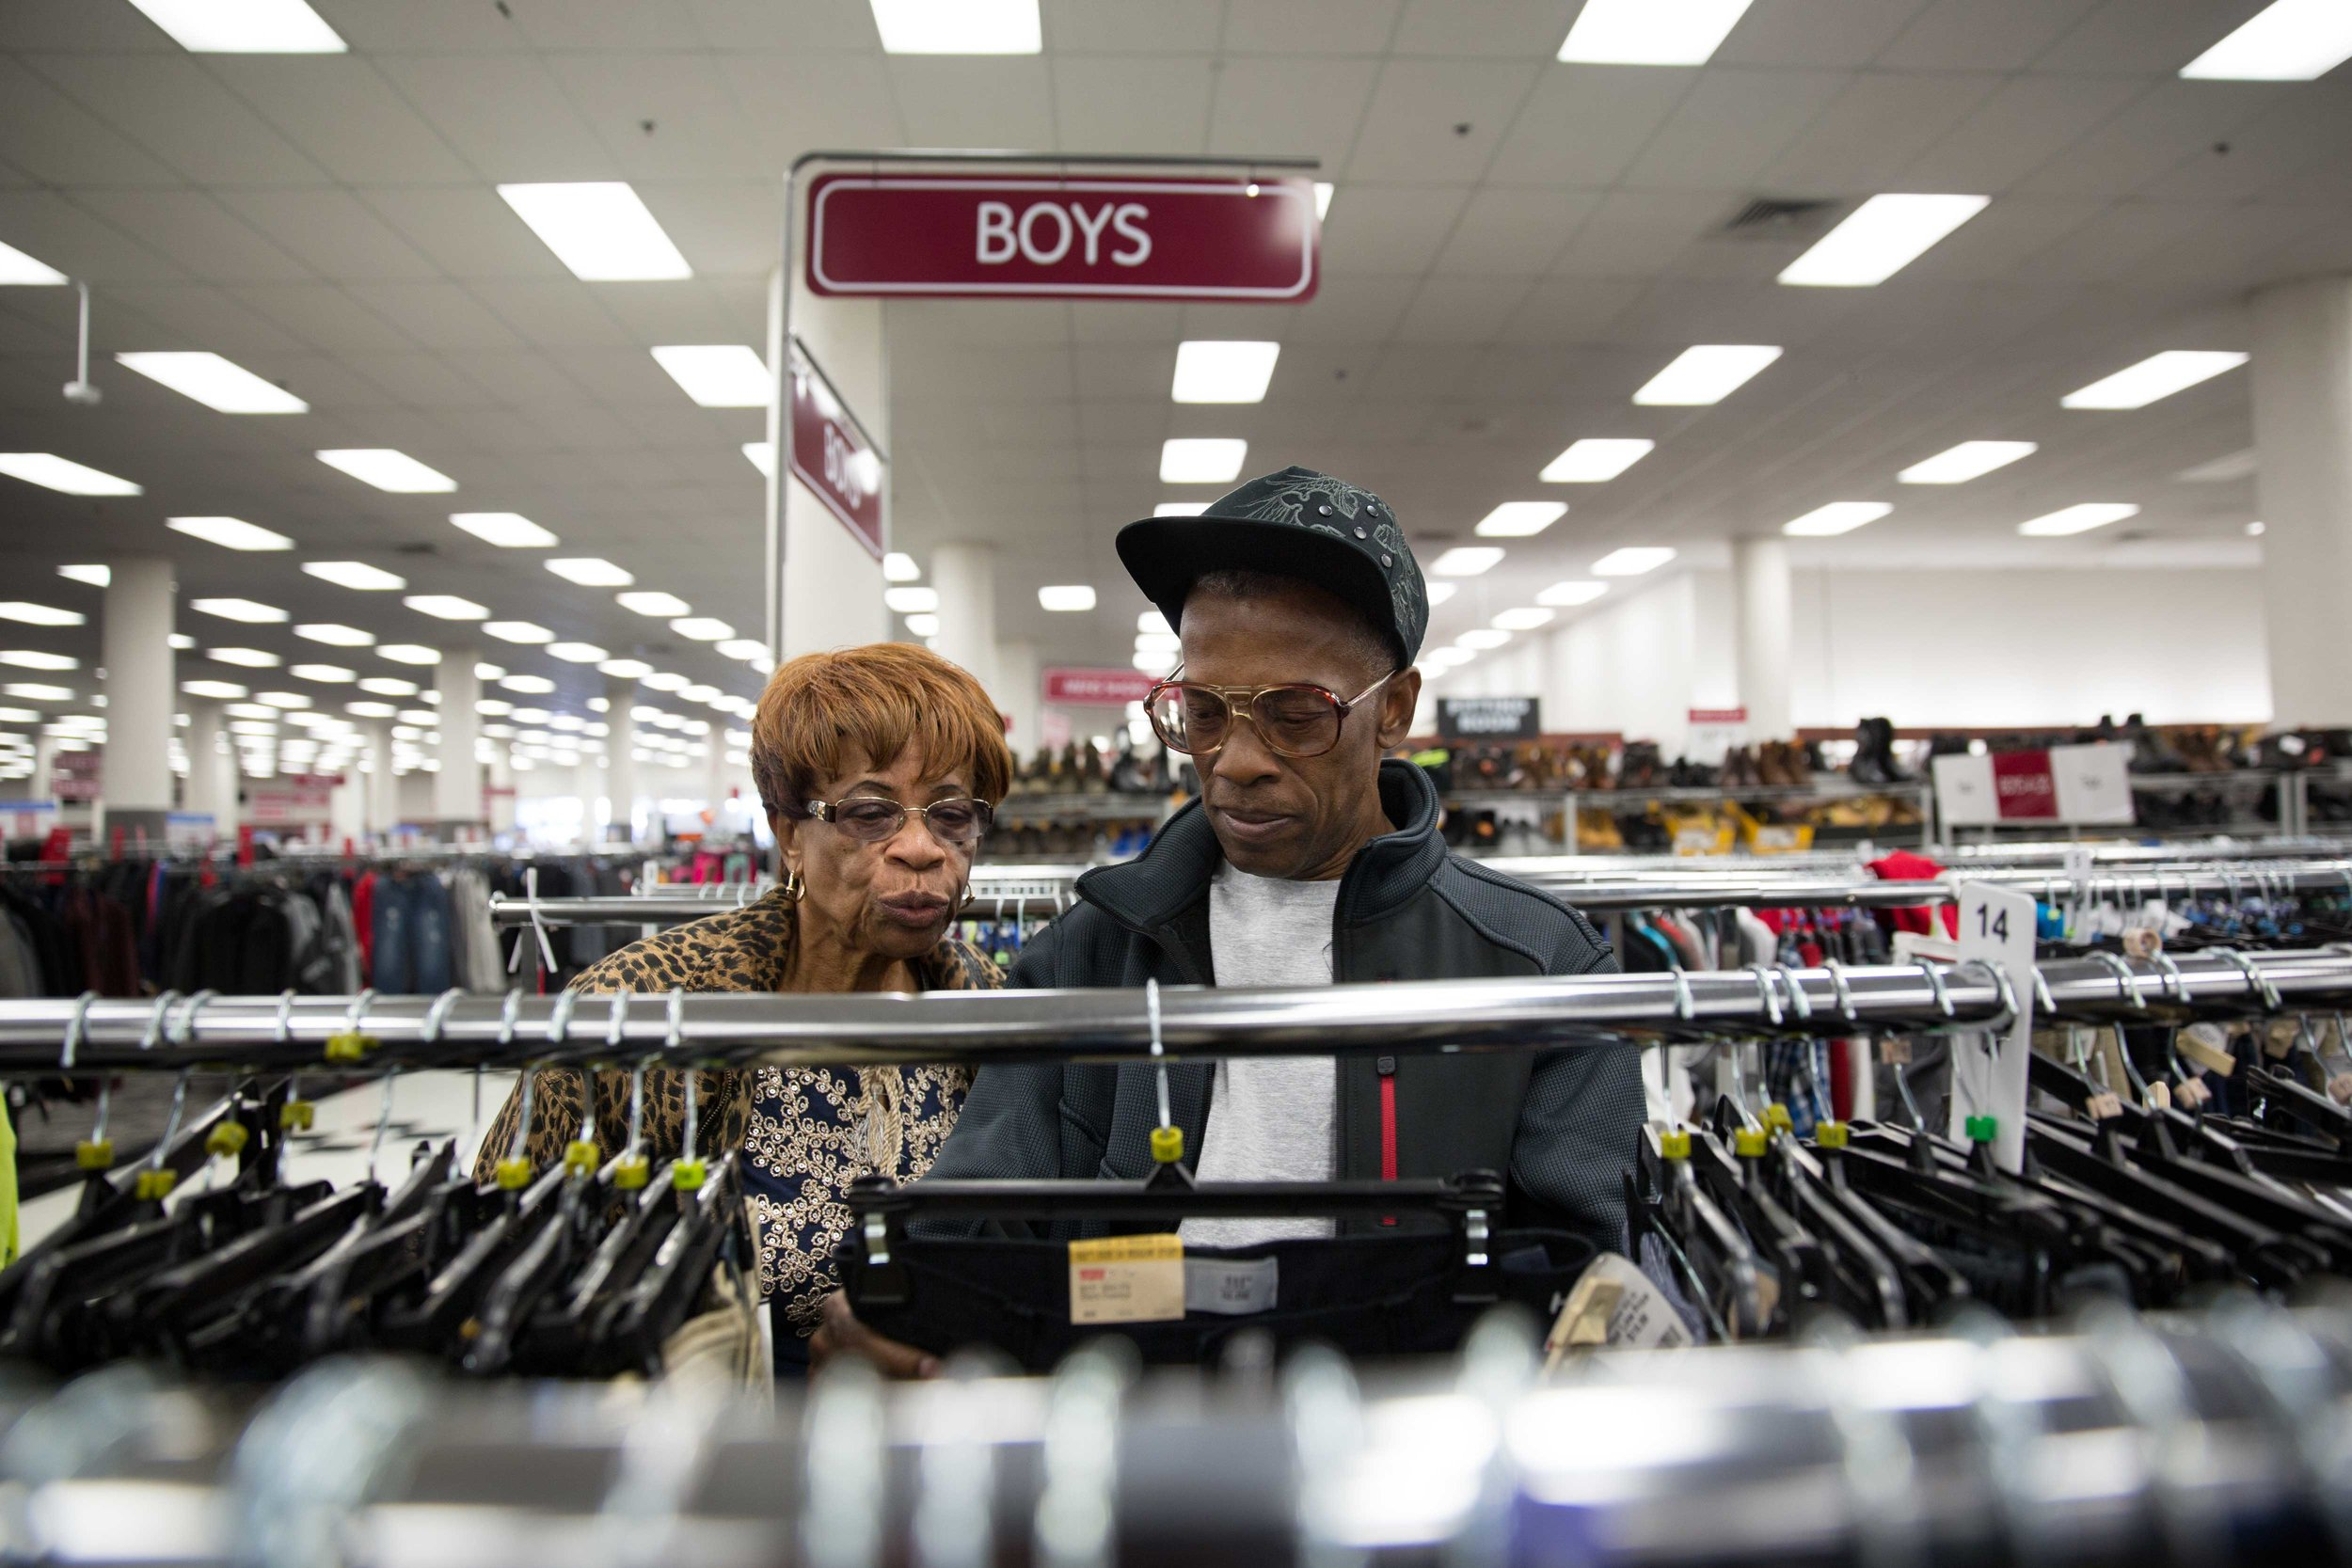 Willie Mae takes Ronald shopping in Philadelphia, a day after his release from St. Clair Correctional Facility in Alabama.